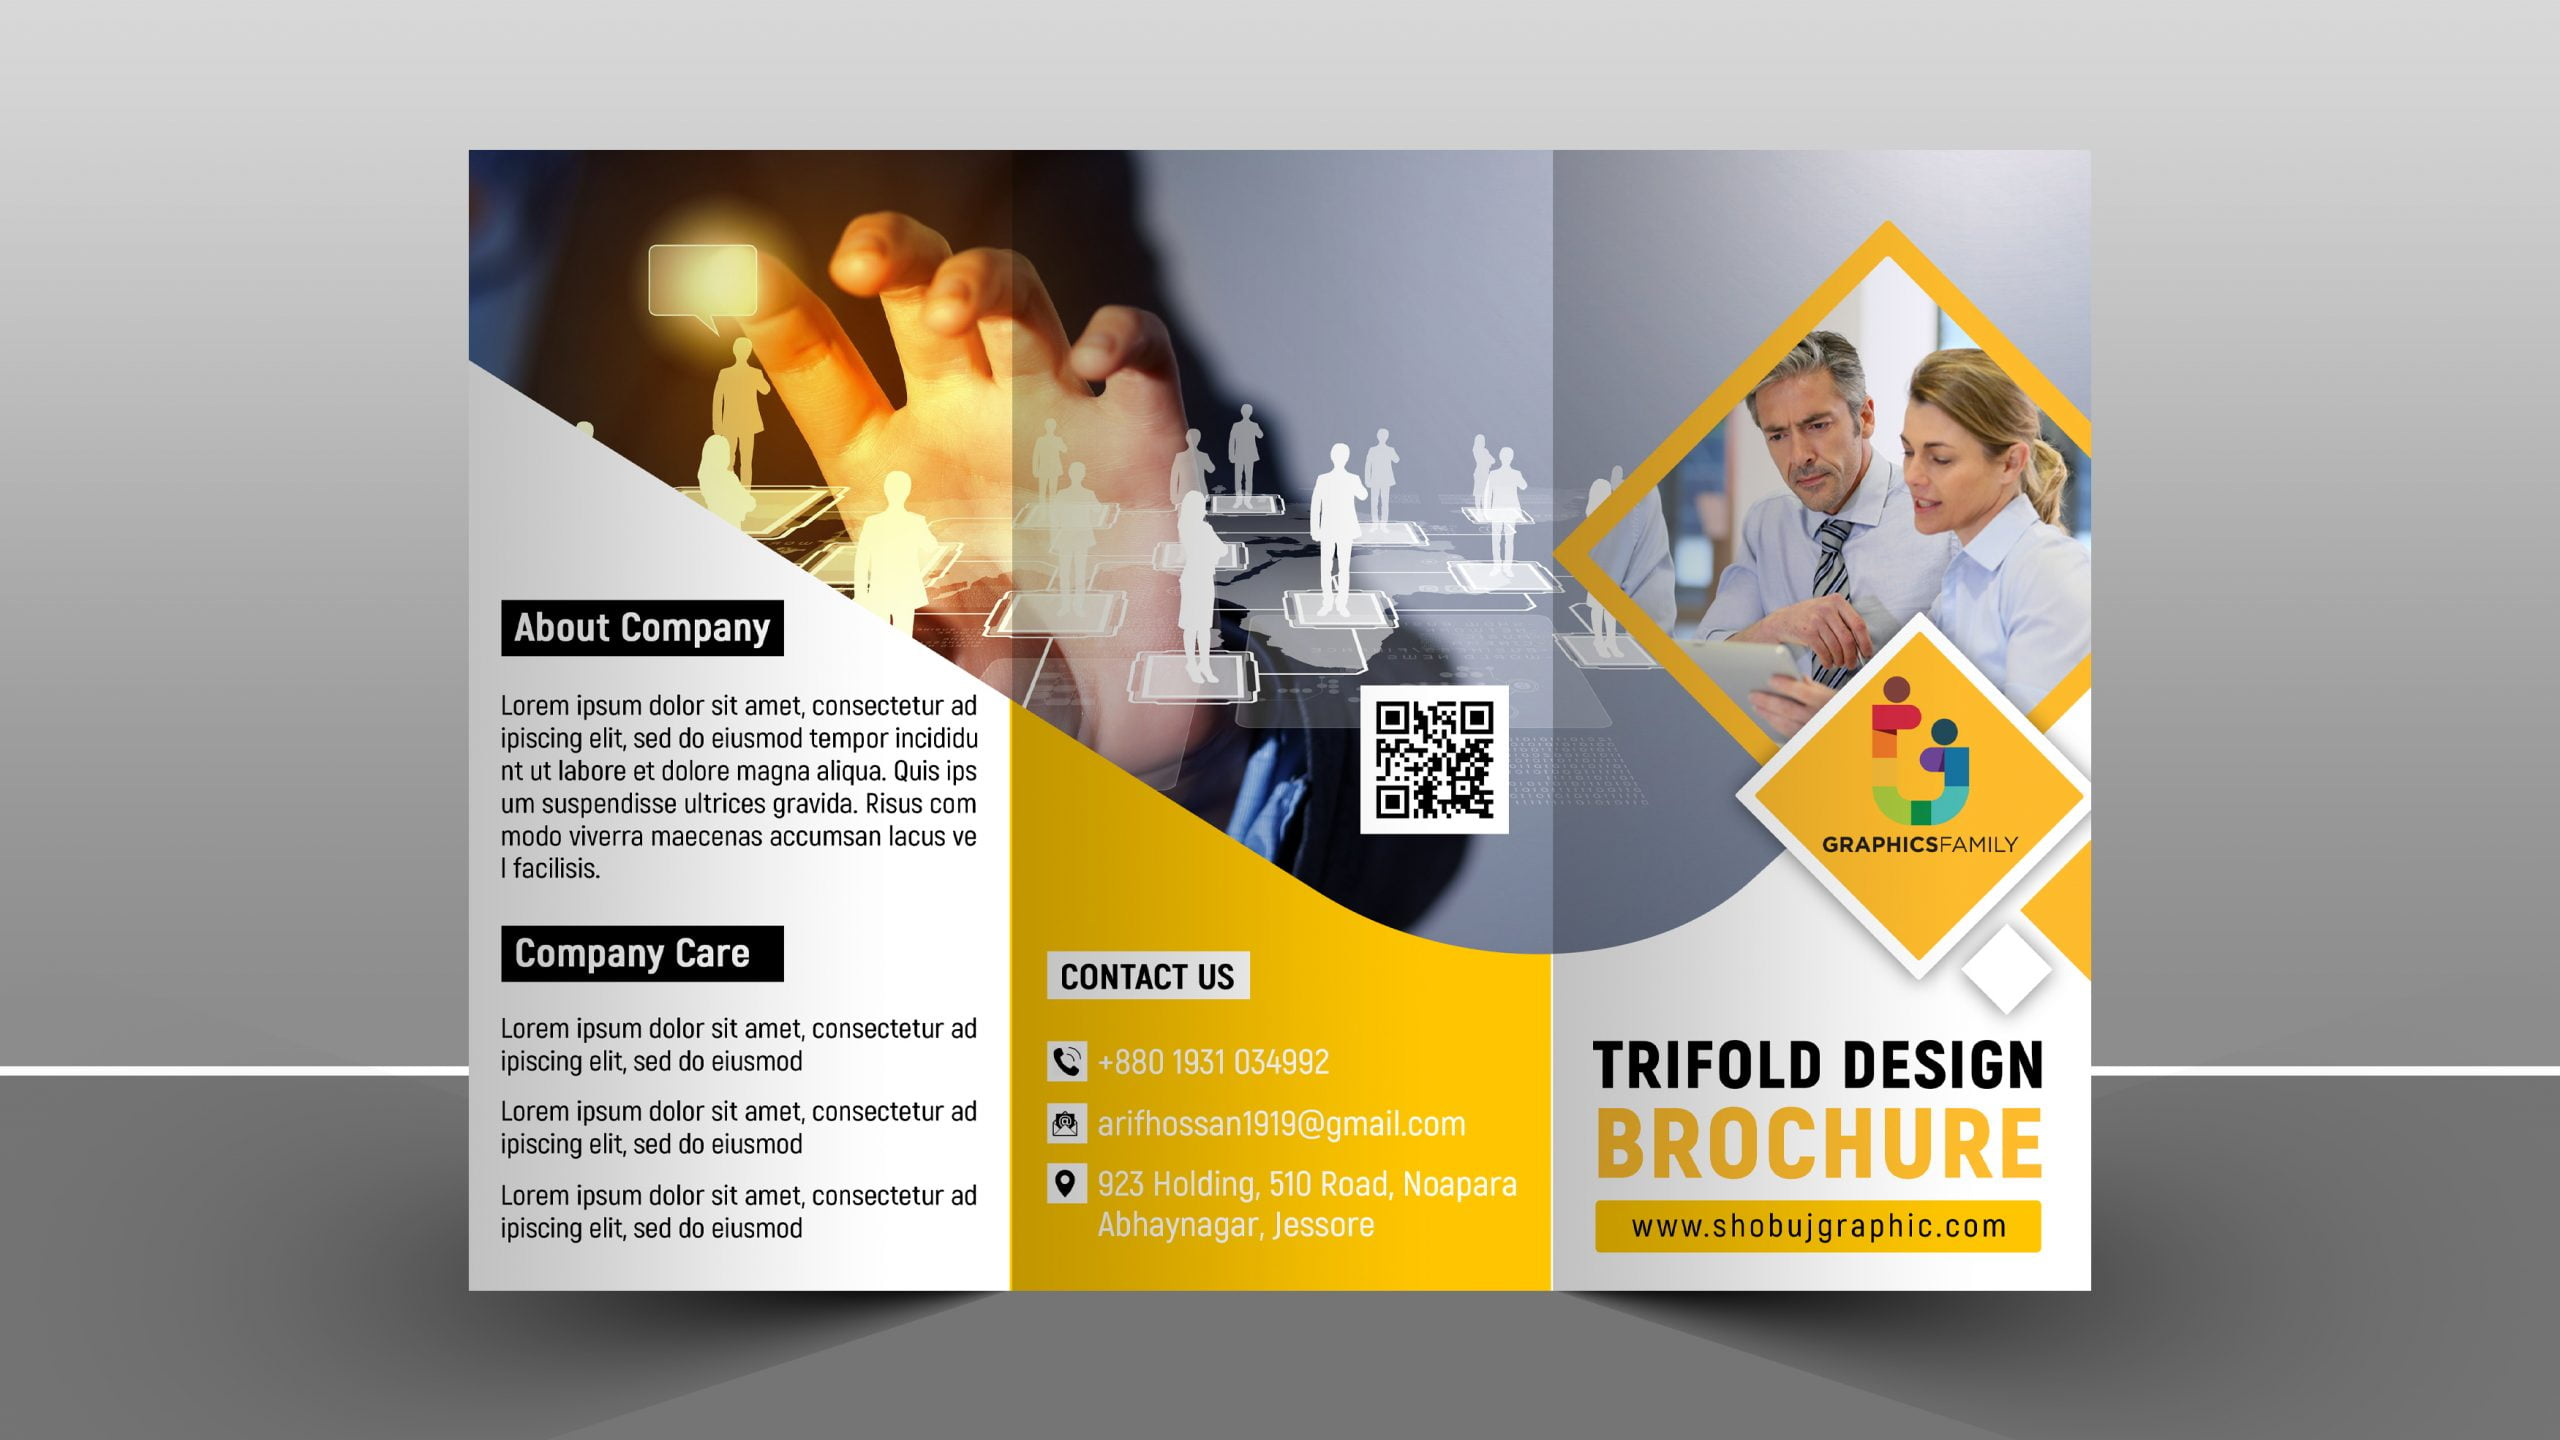 Free Brochure Template Download from graphicsfamily.com